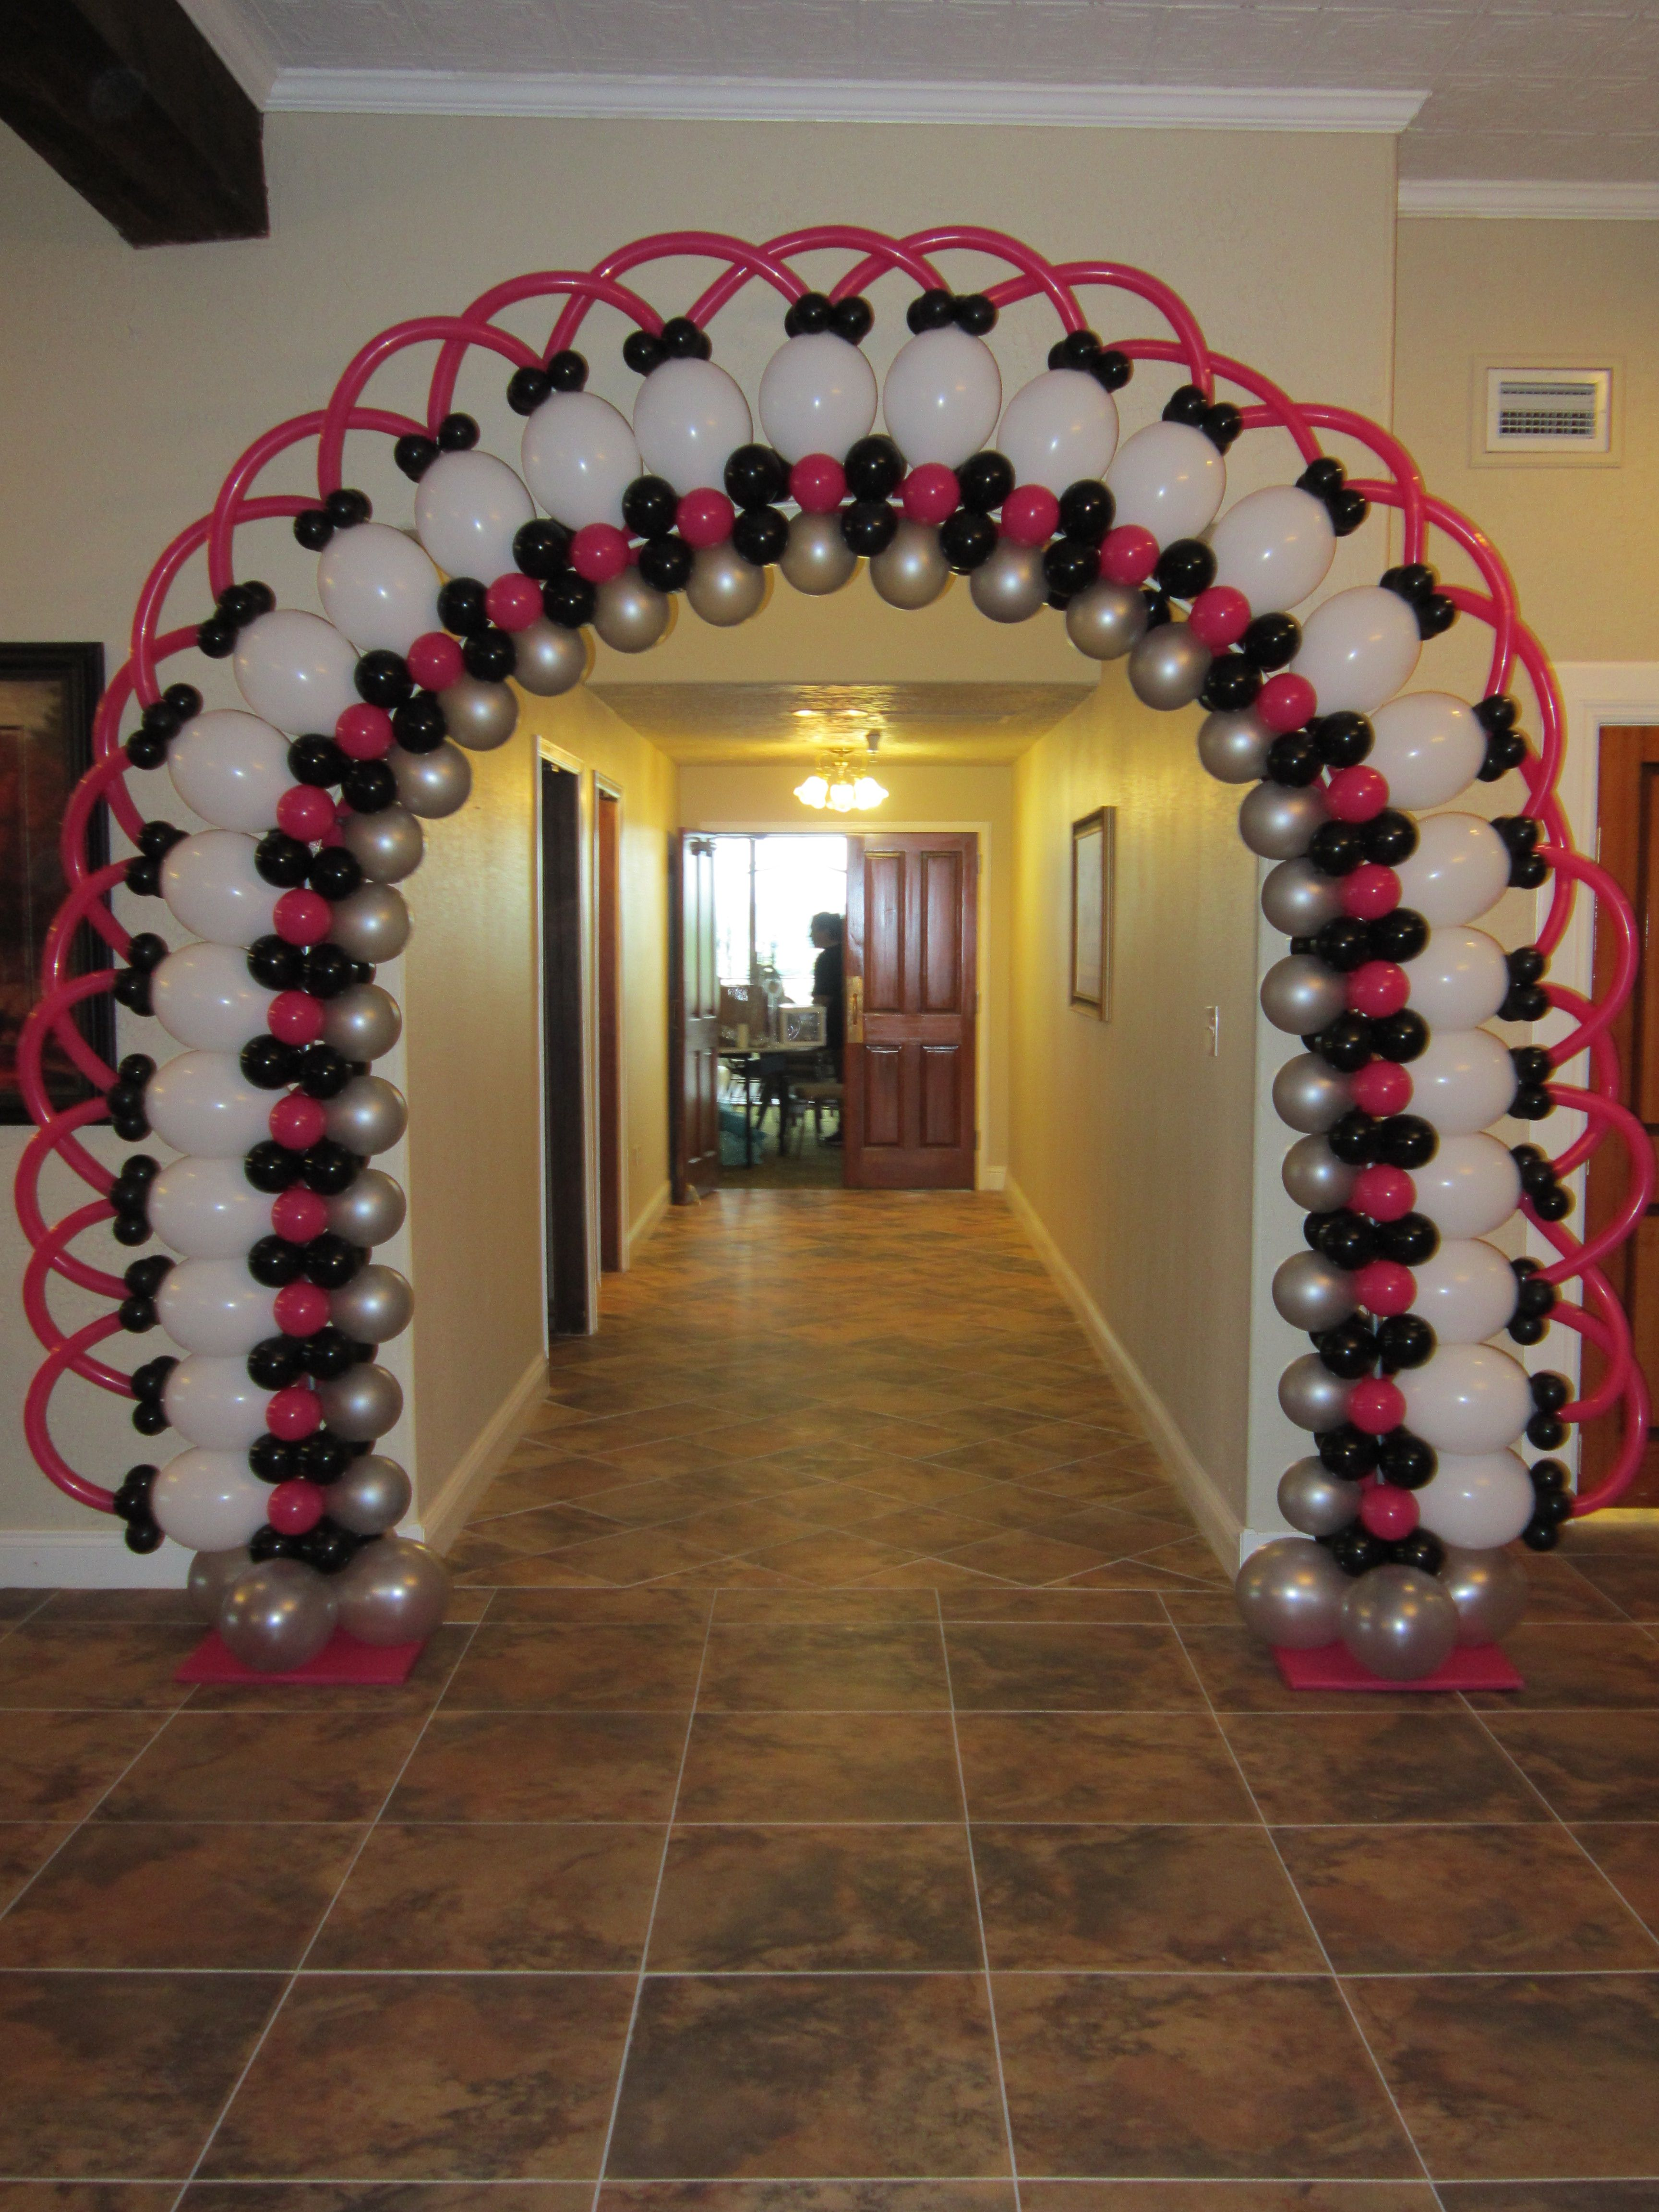 Lacy entryway balloon arch balloons pinterest for Balloon decoration arches